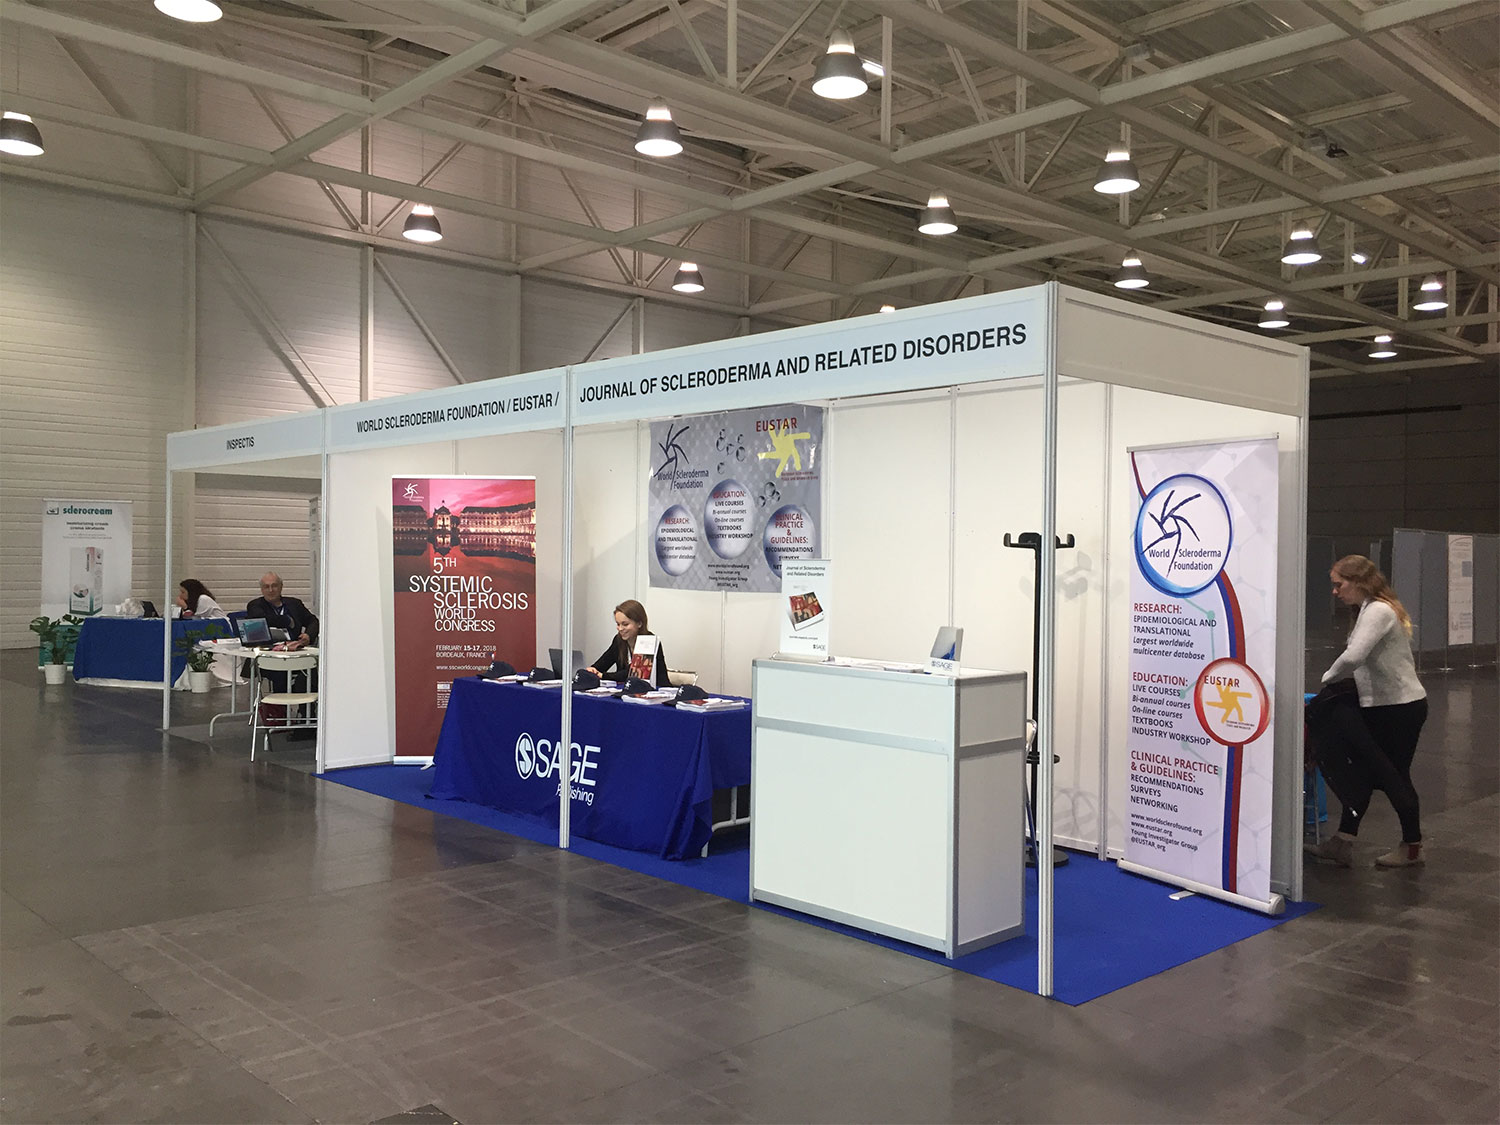 EUSTAR is preparing its participation to the upcoming ACR congress